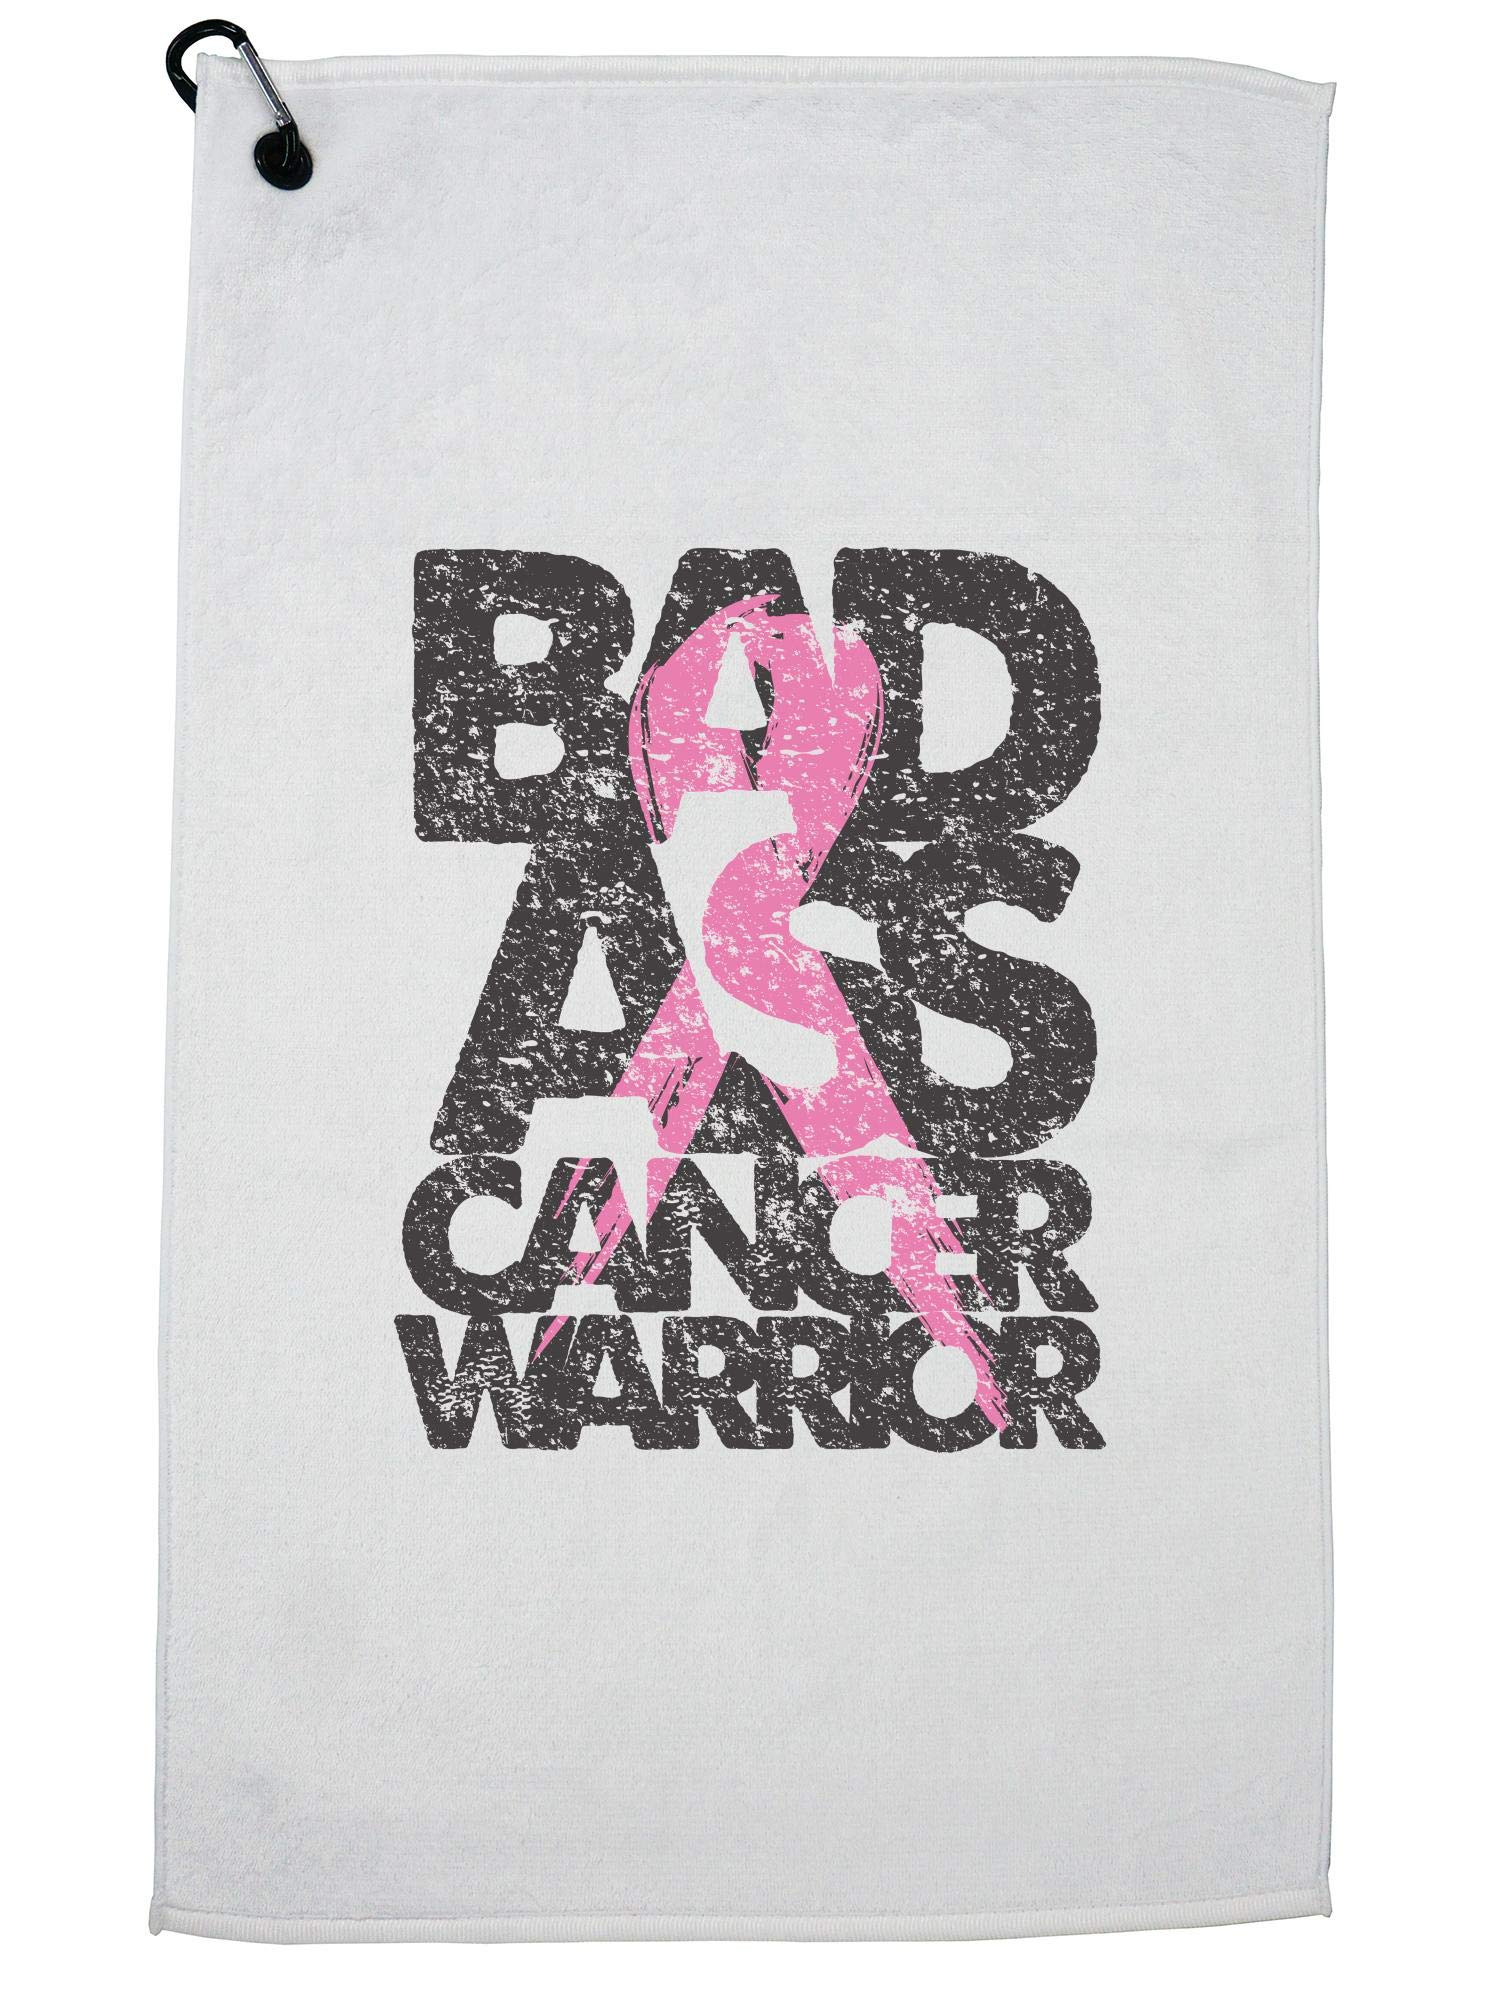 Hollywood Thread Bad Ass Breast Cancer Warrior Pink Support Golf Towel with Carabiner Clip